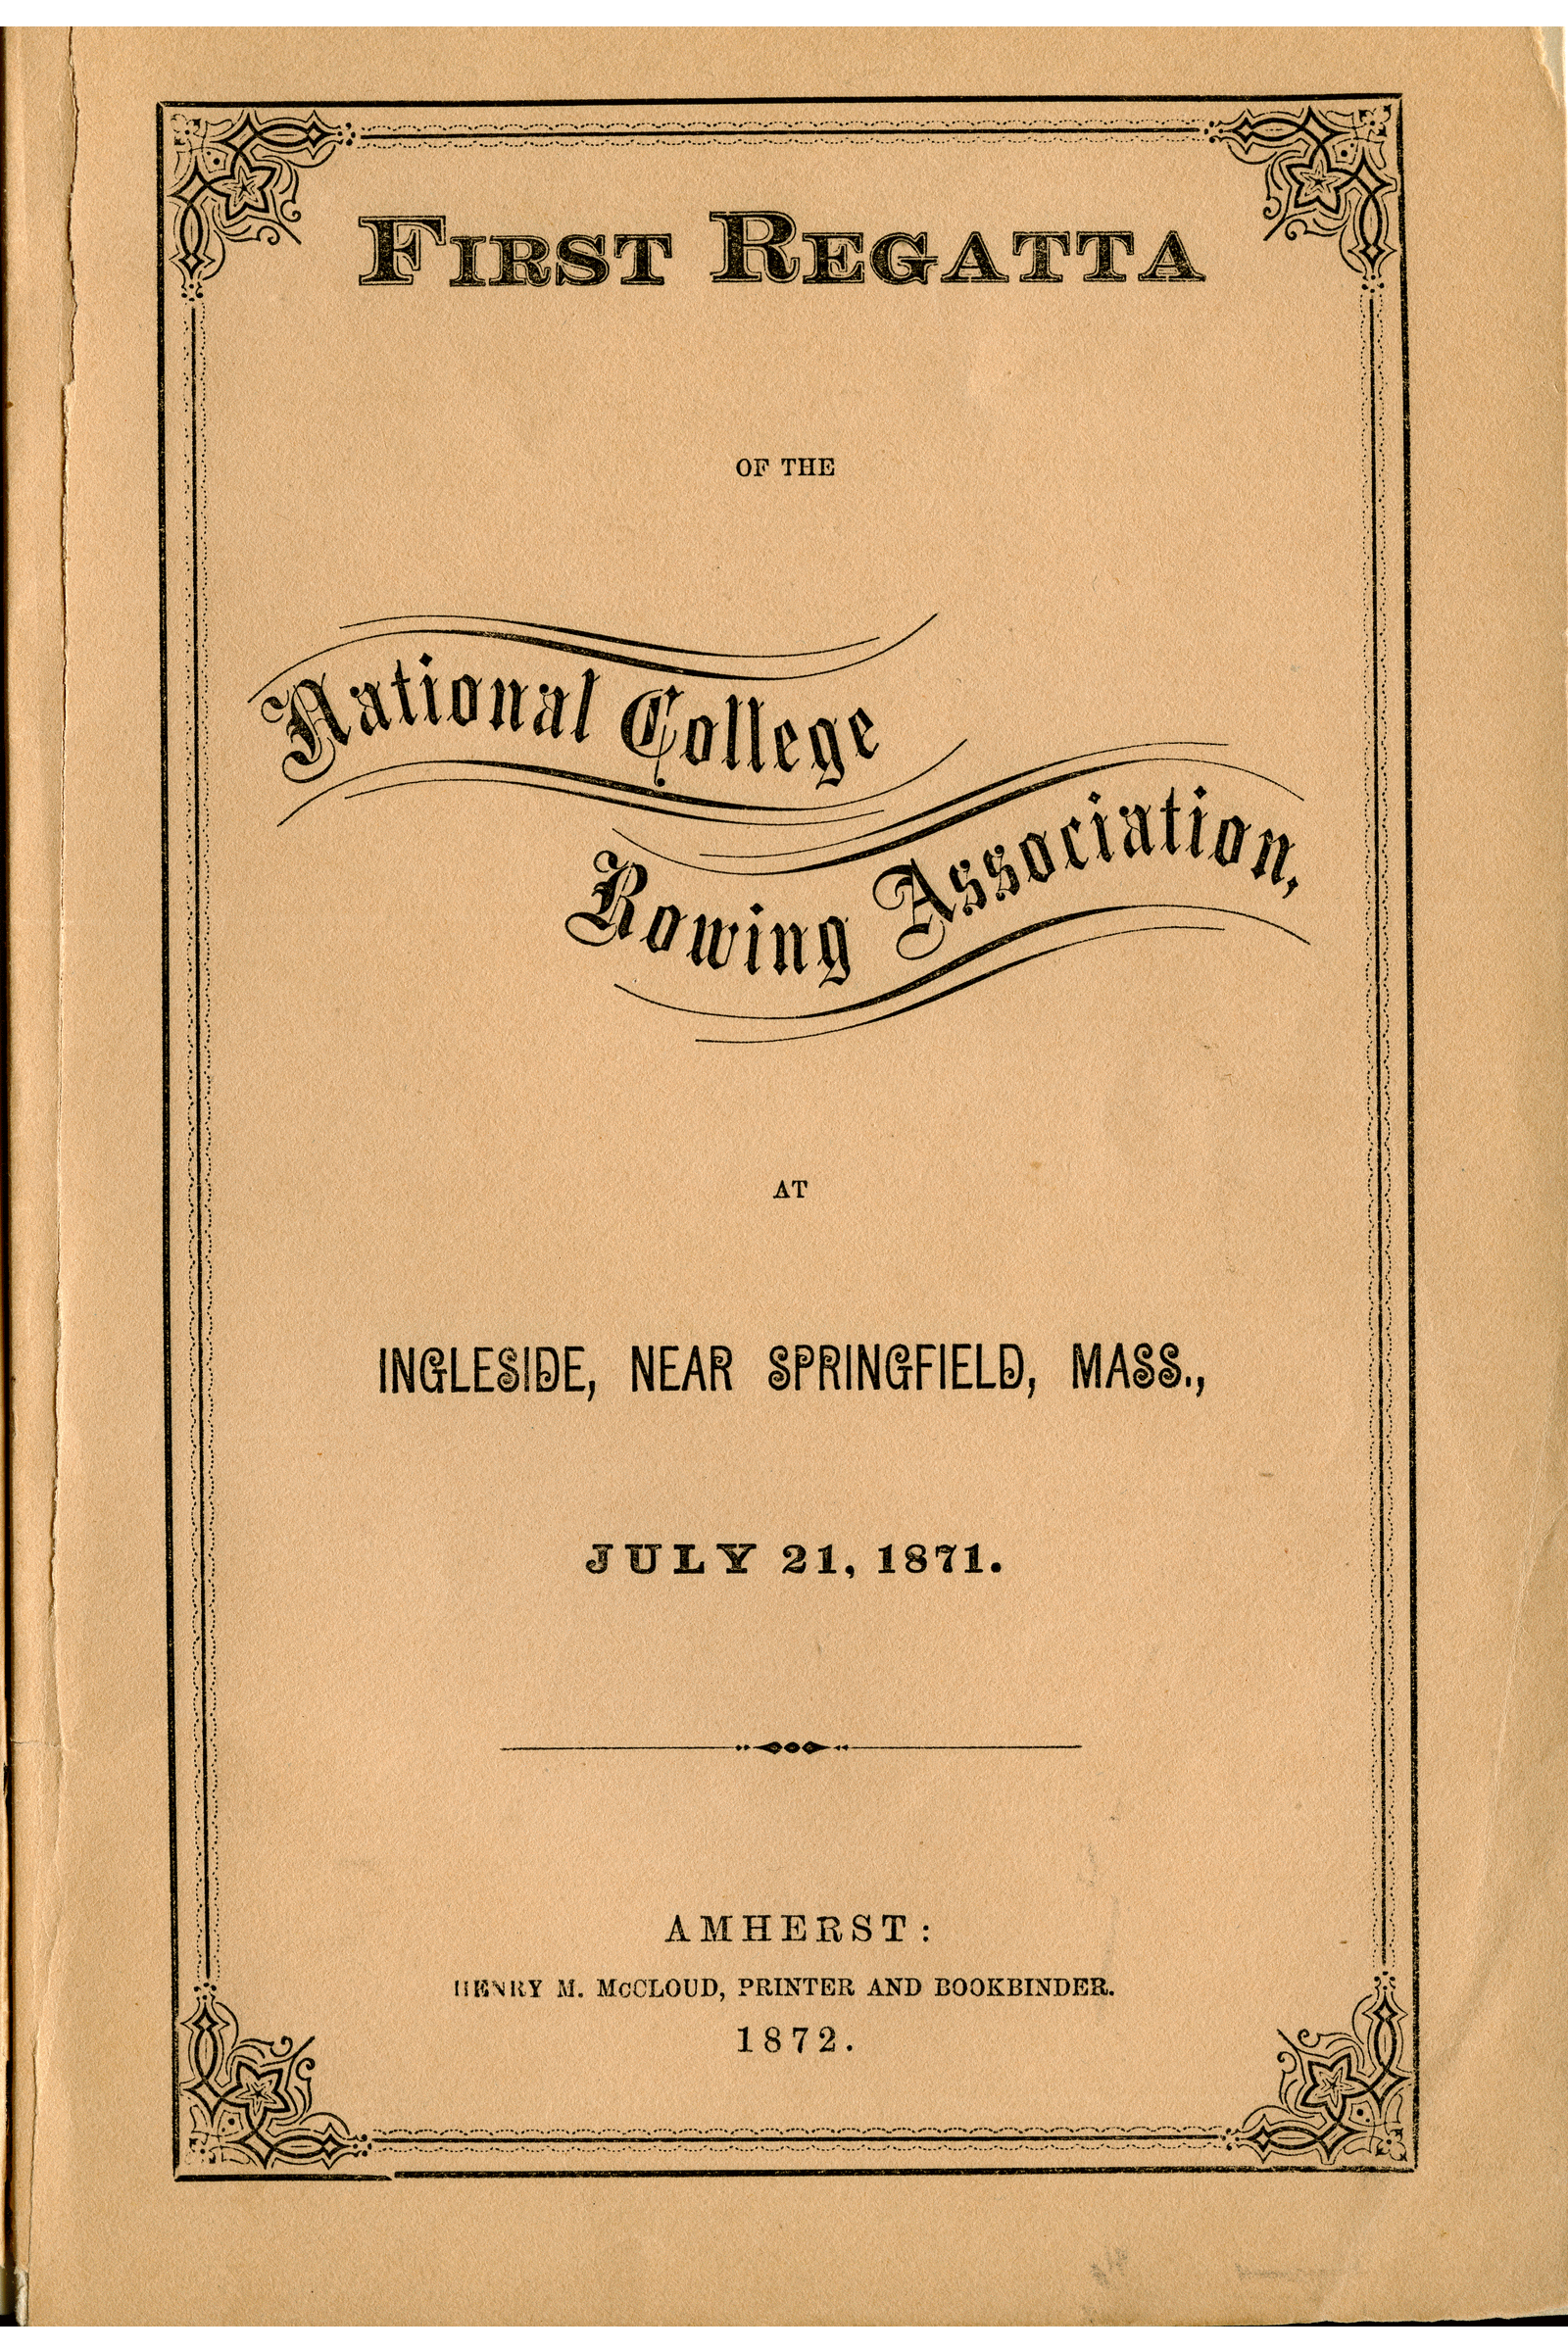 Account of the victory of the Massachusetts Agricultural College crew over Harvard, Yale, and Brown.